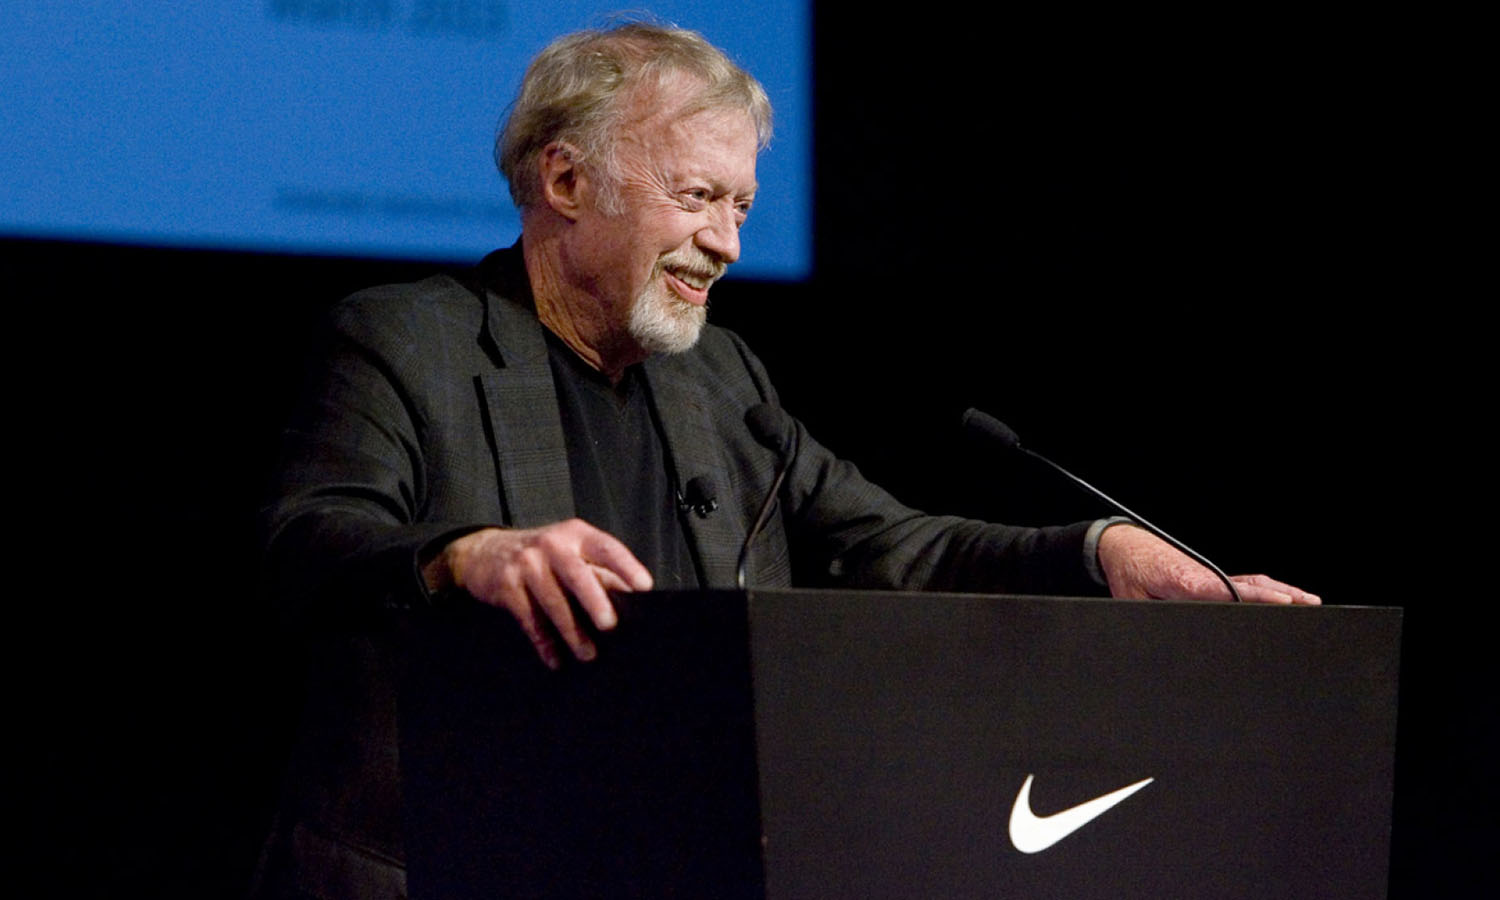 Nike: Philip Knight's Success Story